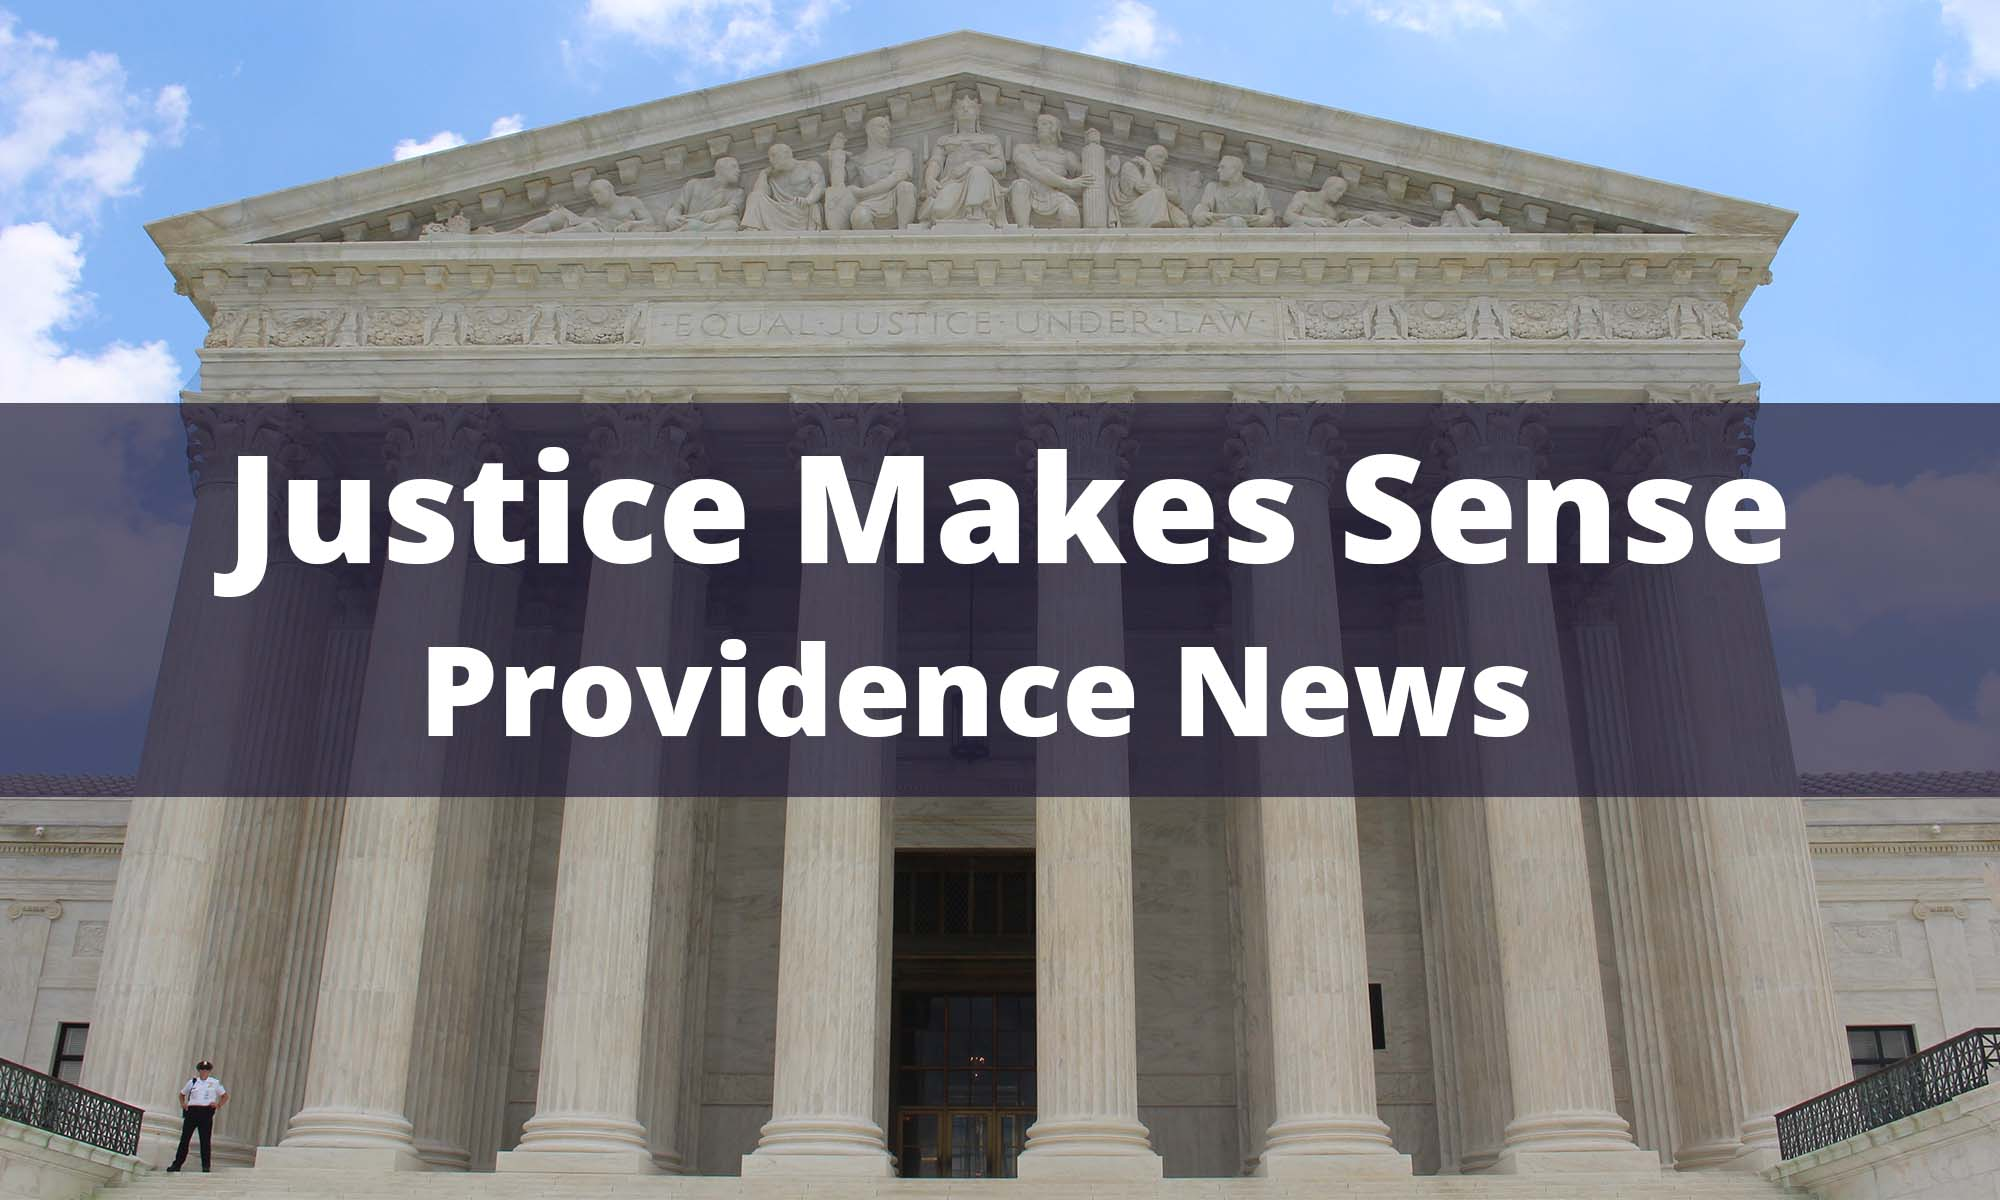 Justice Makes Sense Providence News